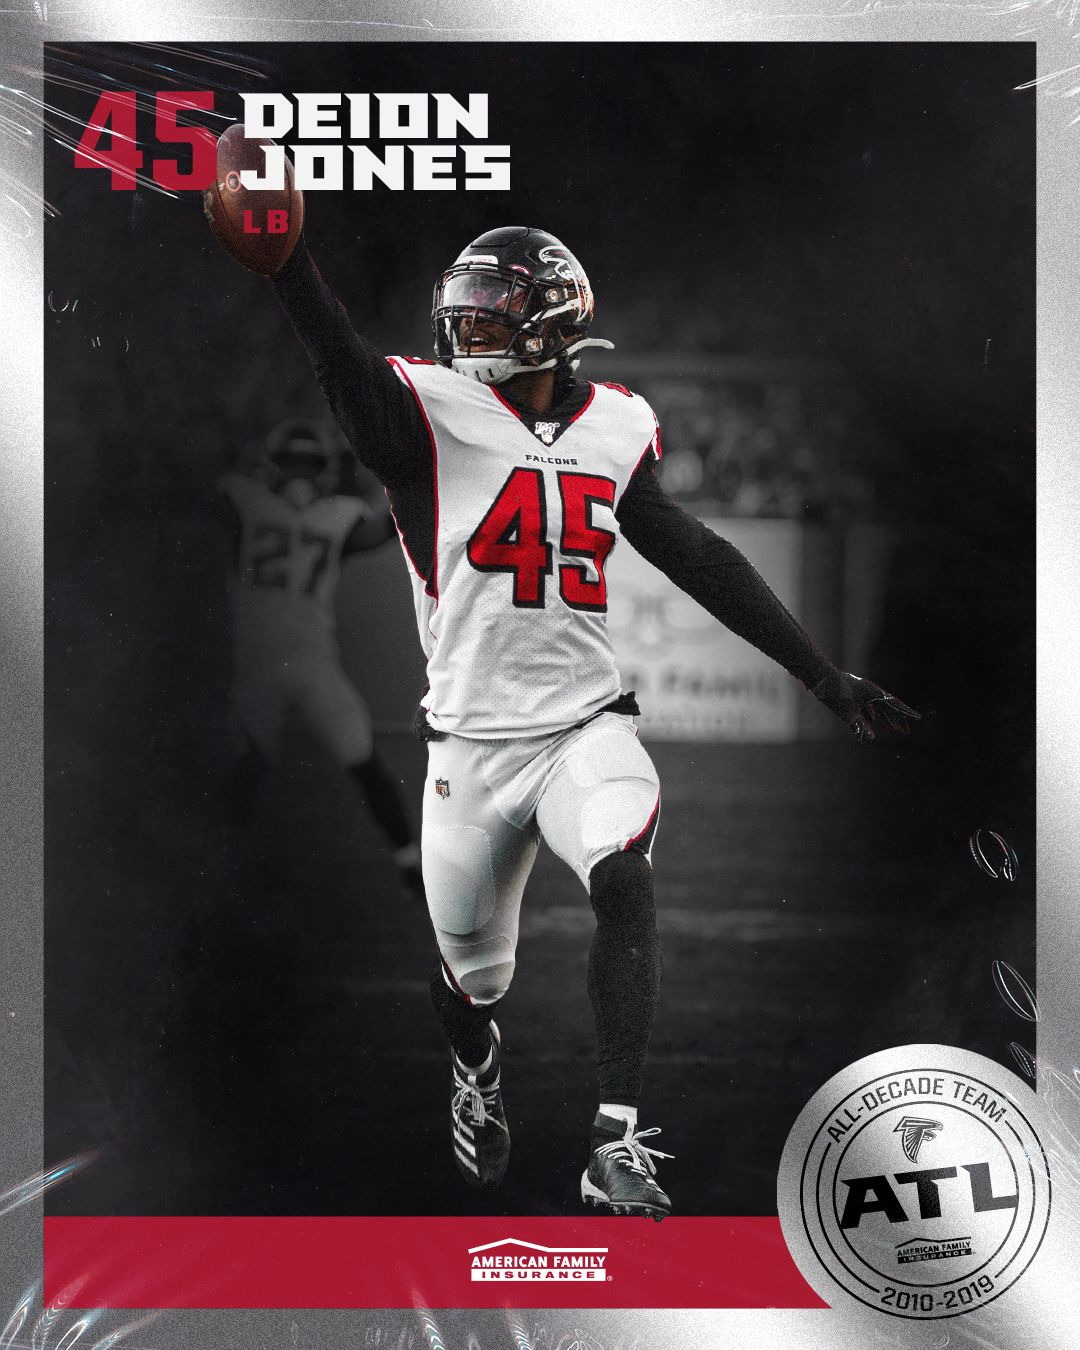 2020_af-dm_adt_deion-jones